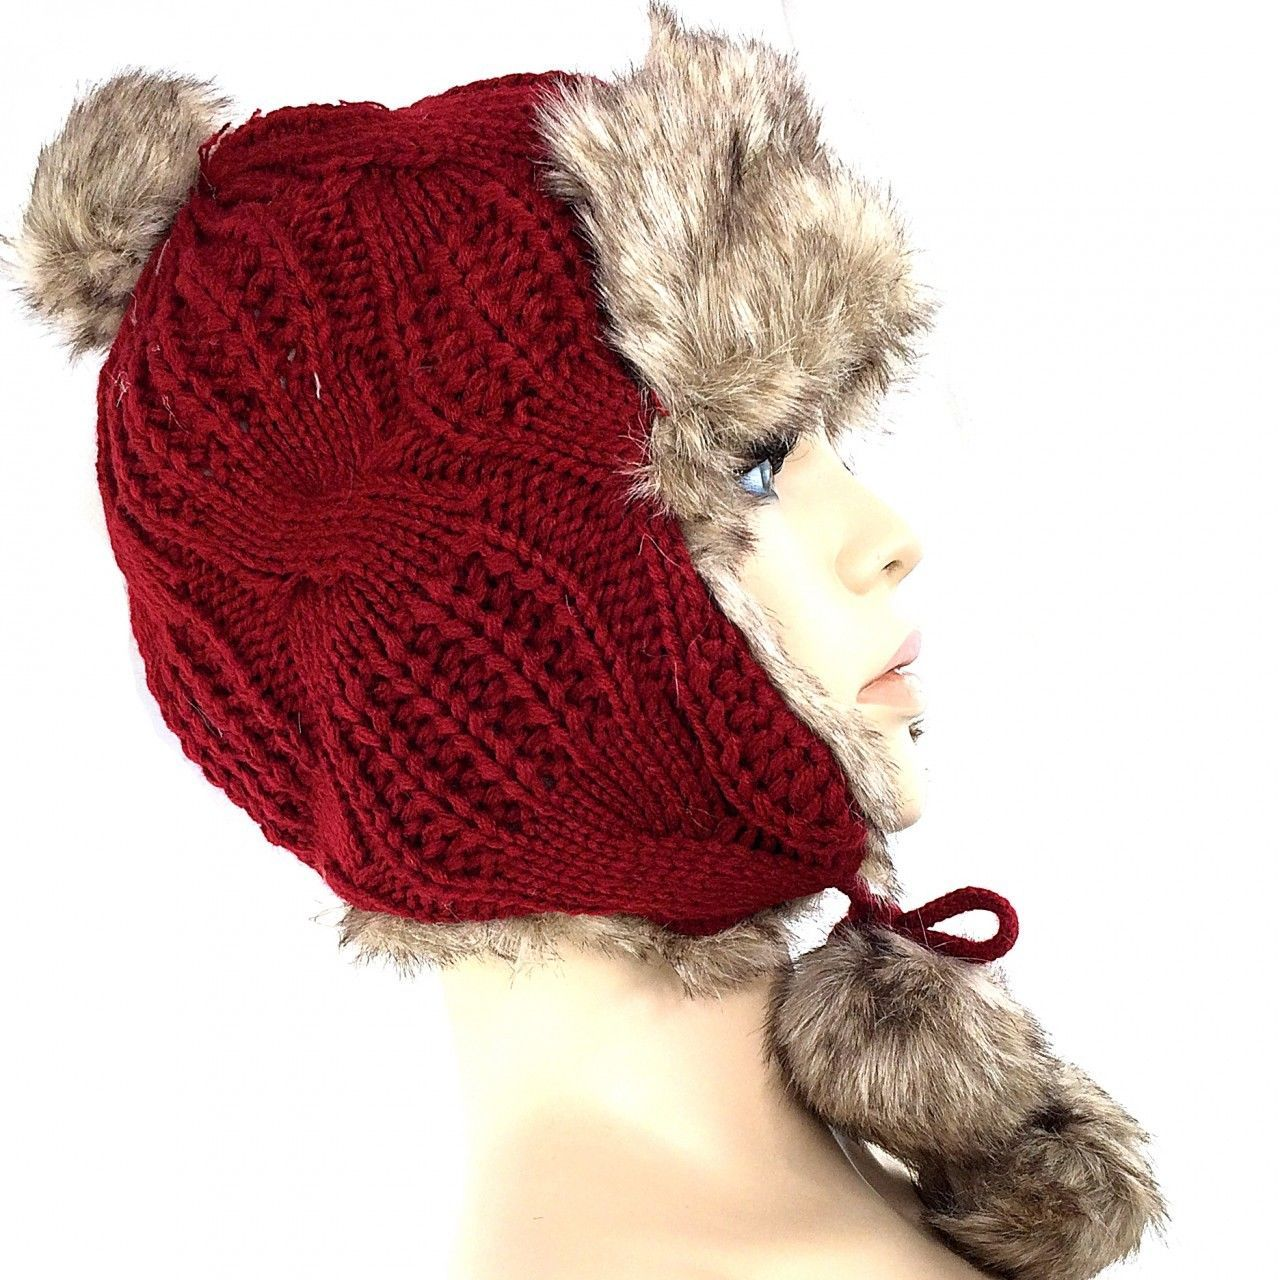 Stylish Winter Knit Women's Trapper Hat w/ Faux Fur & Pom Poms Ski Snow Bunny